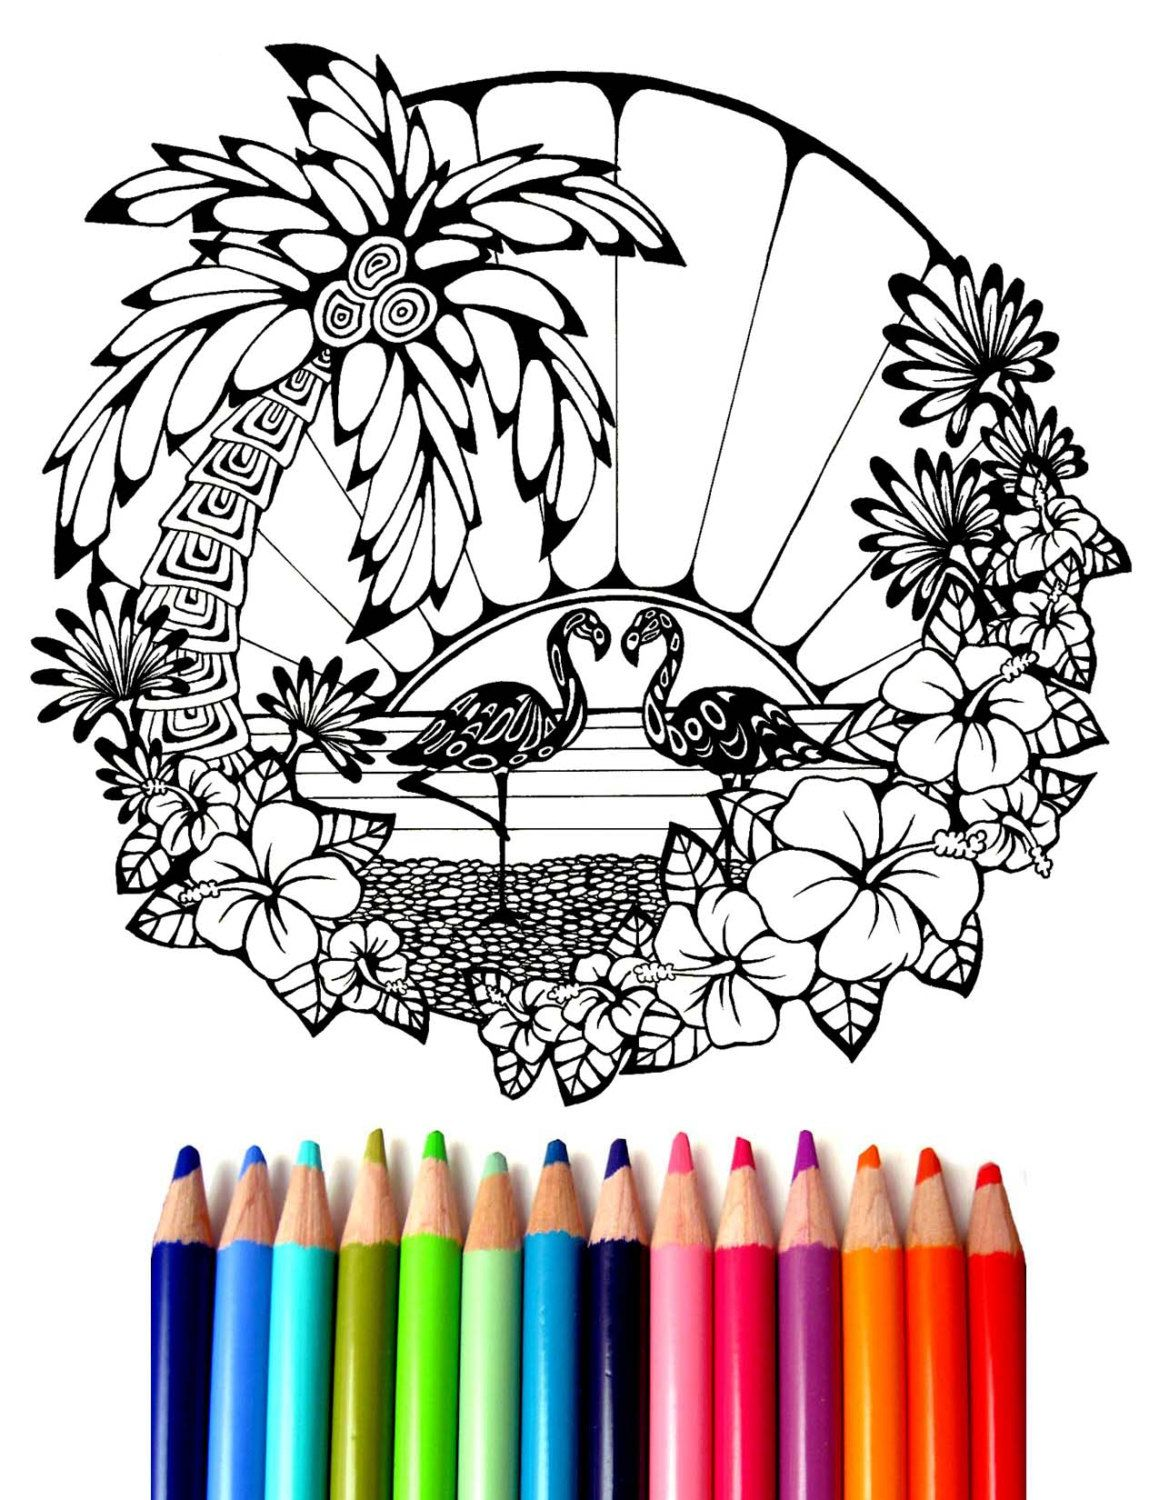 Coloring sheets for adults flamingo - Flamingo Coloring Sheet Hand Drawn Coloring Page Ocean Coloring Page Palm Tree